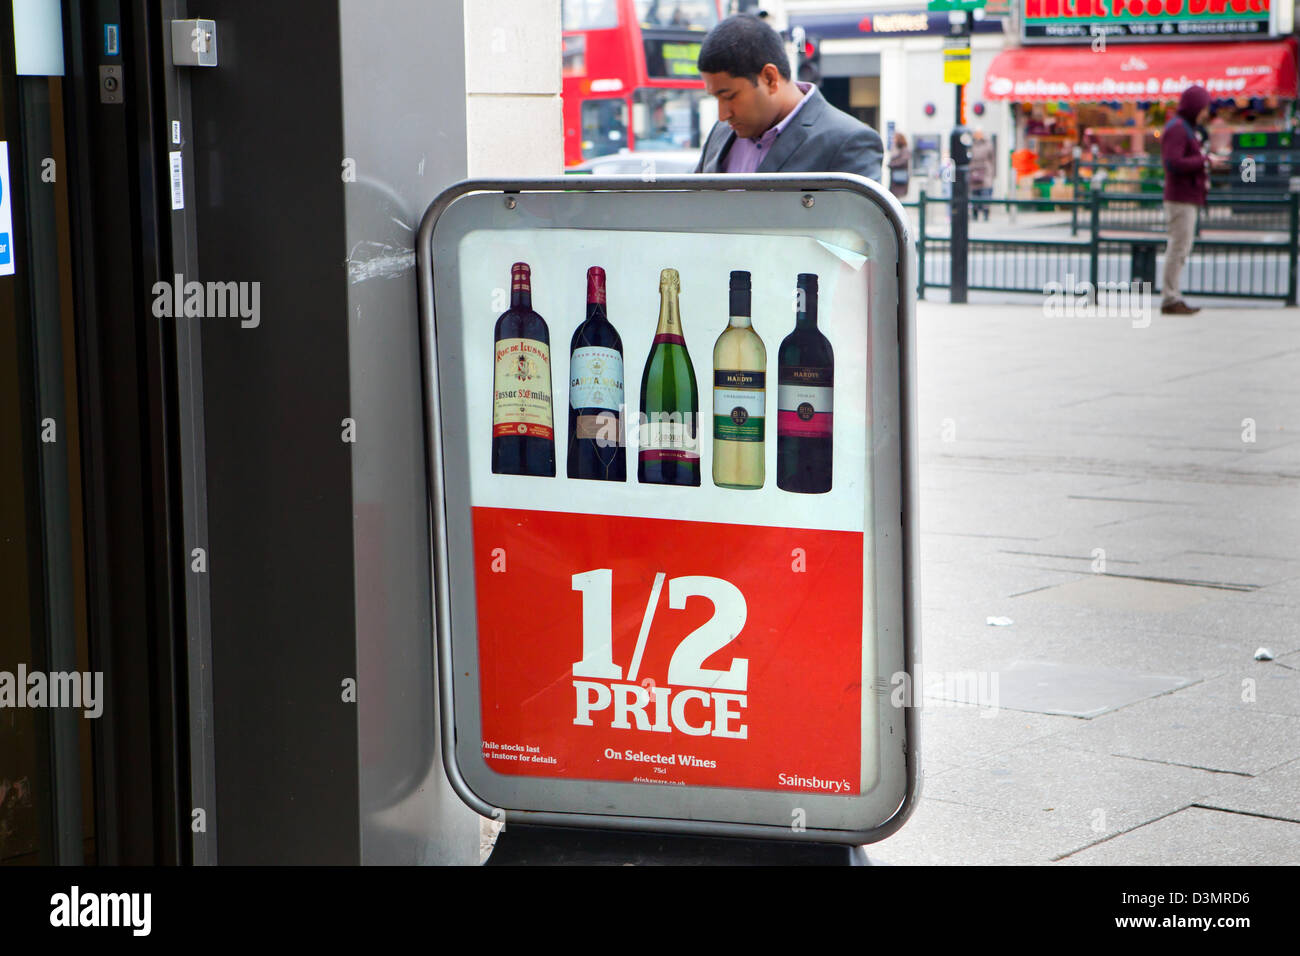 Shop sign for half price wine - Stock Image